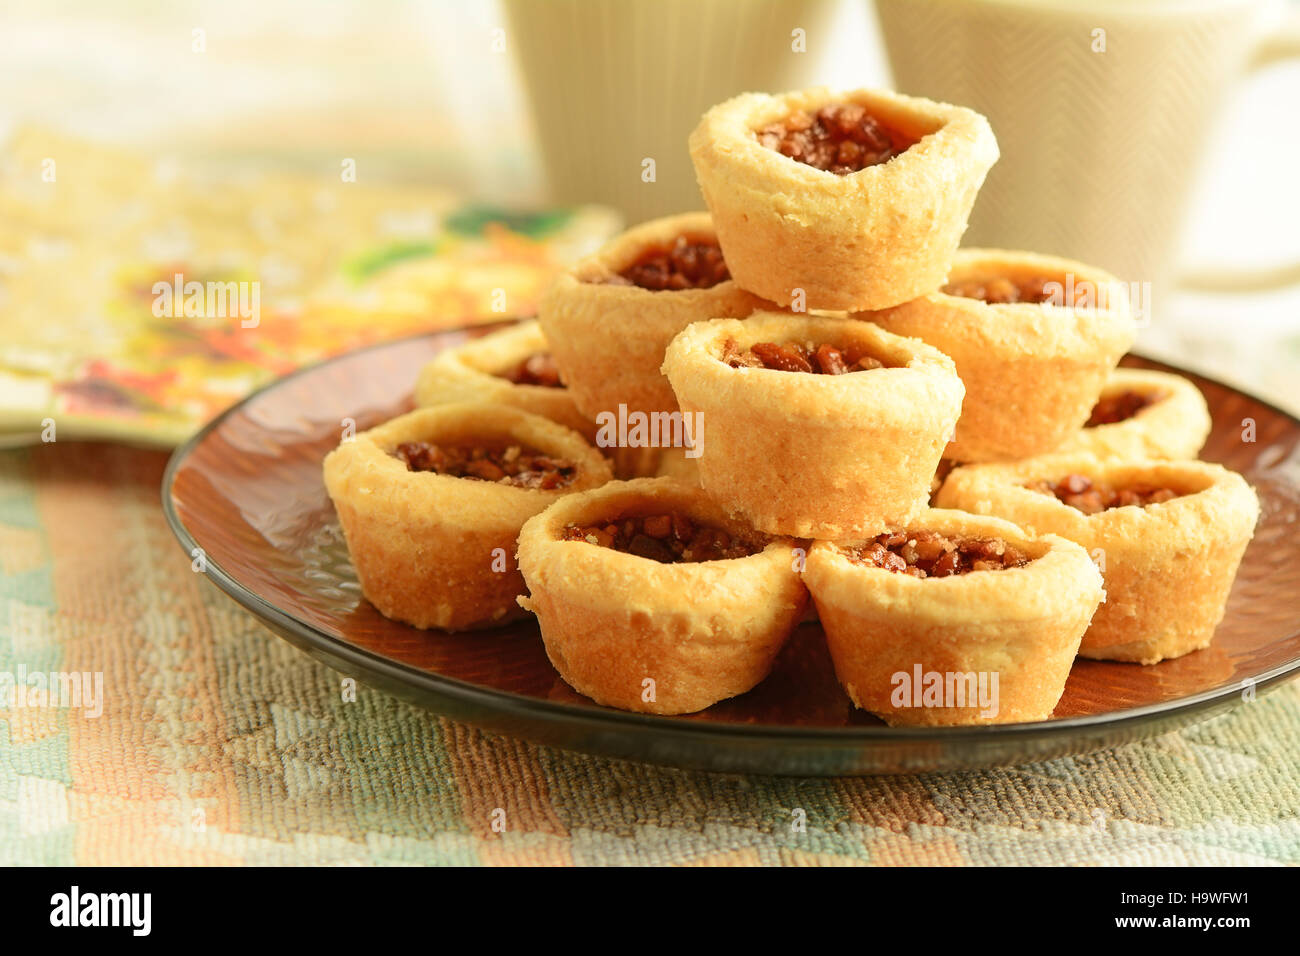 Delicious little pecan tarts with flaky pastry and coffee in vertical format - Stock Image